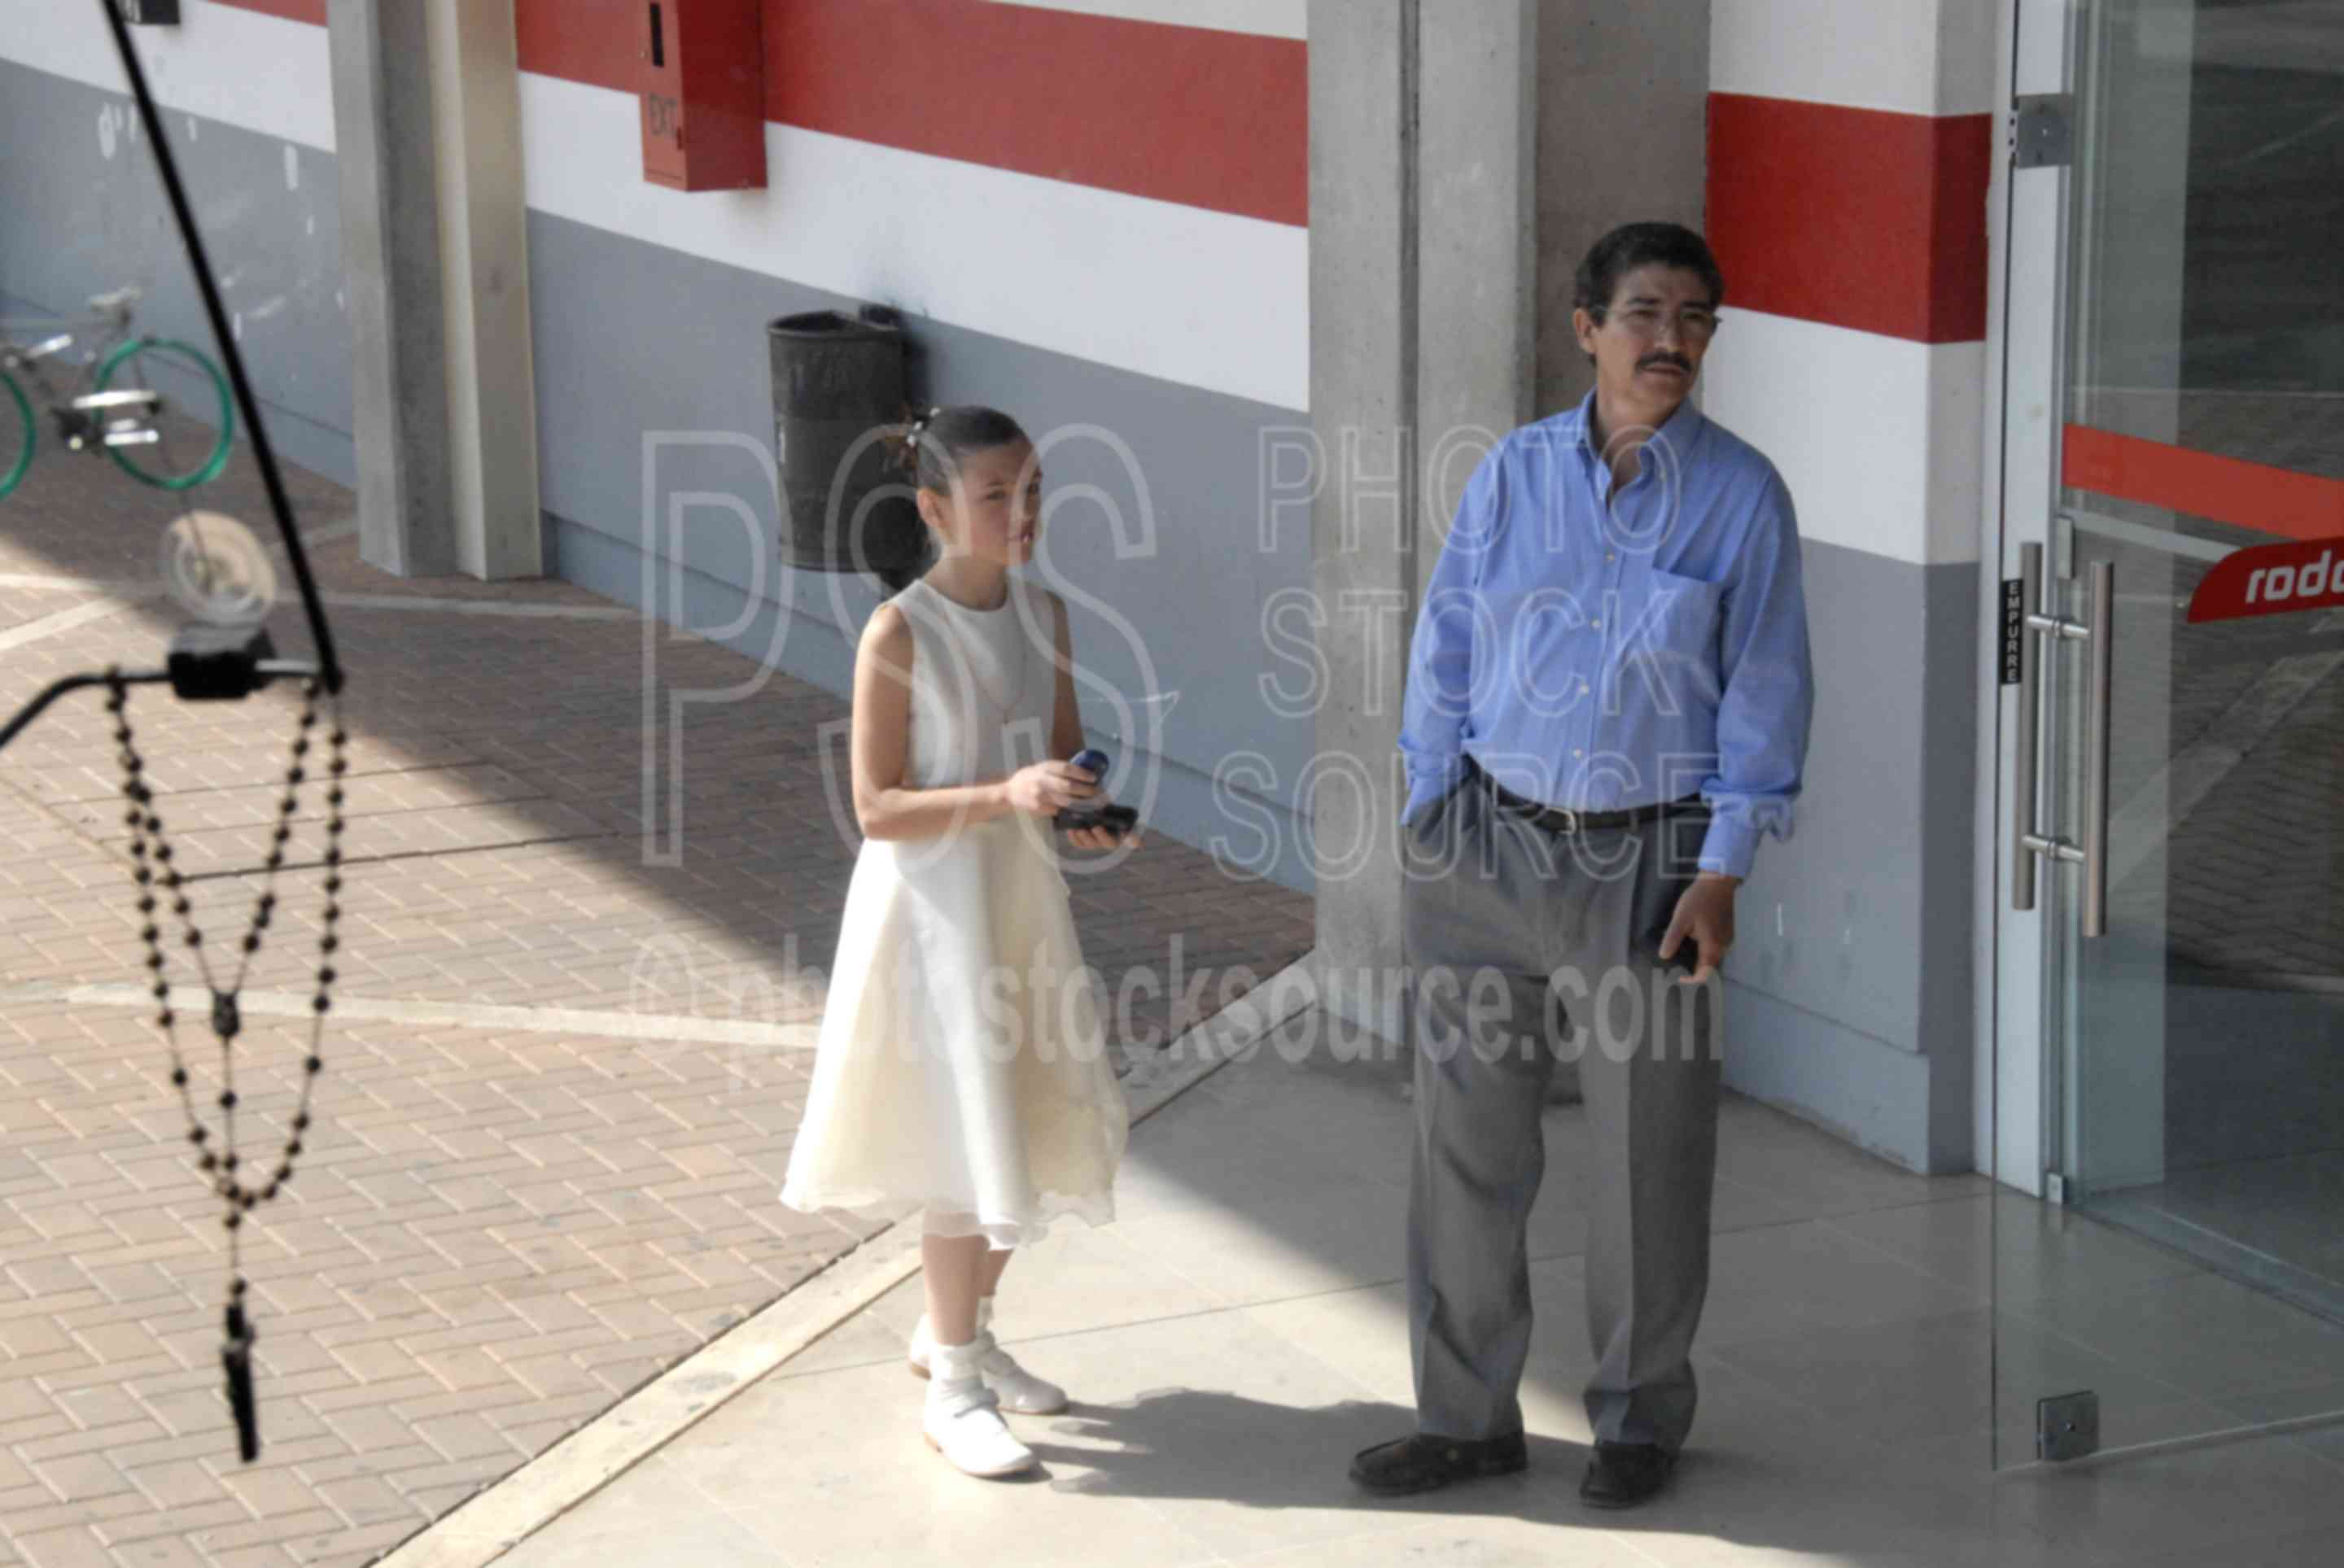 Waiting for a Bus,father,daughter,bus station,girl,young girl,pretty dress